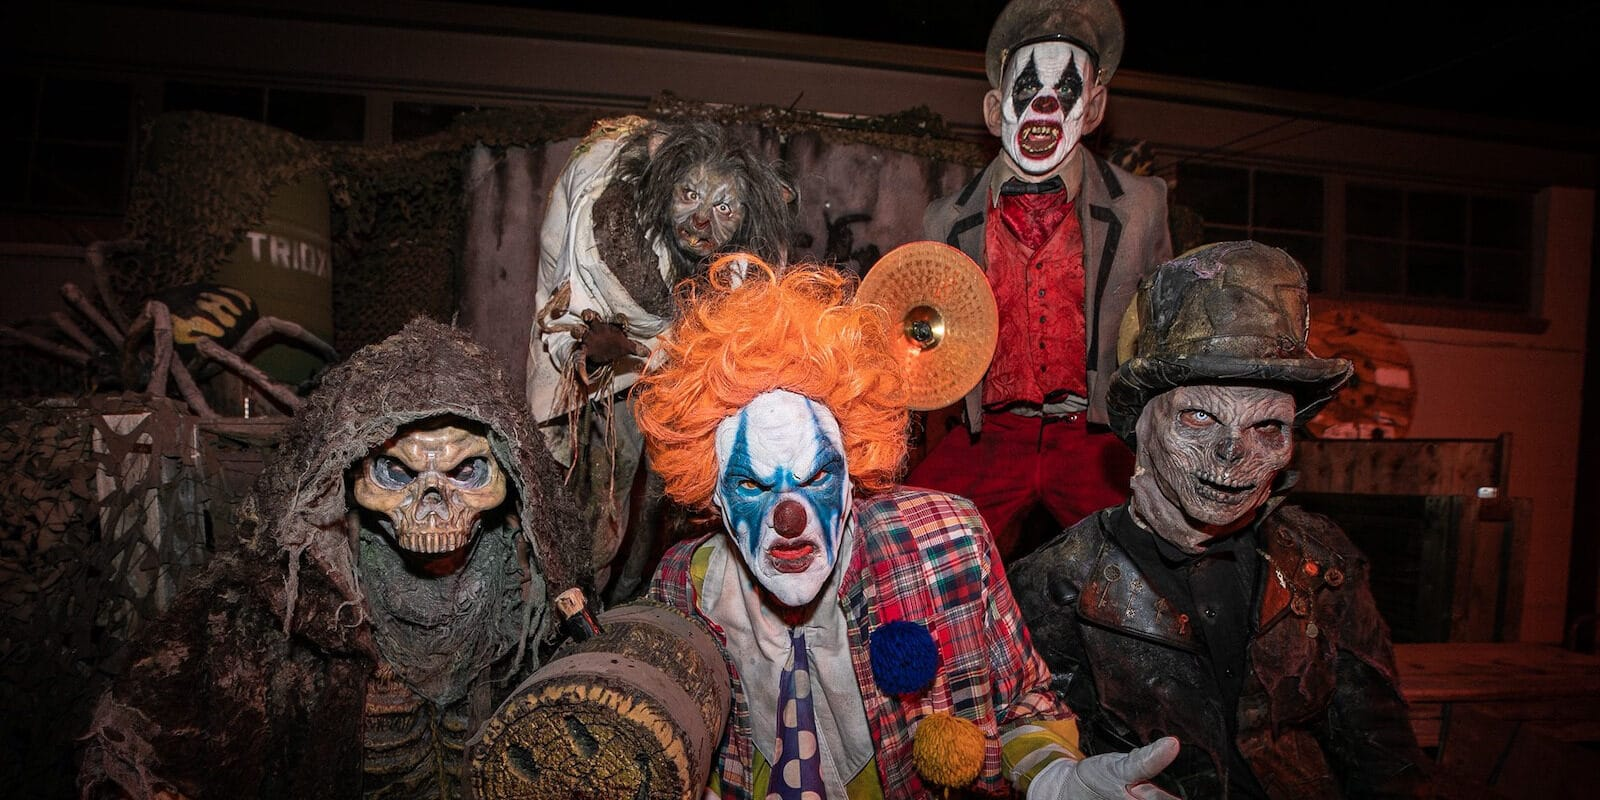 Image of clowns at The 13th Floor Haunted House in Denver, Colorado